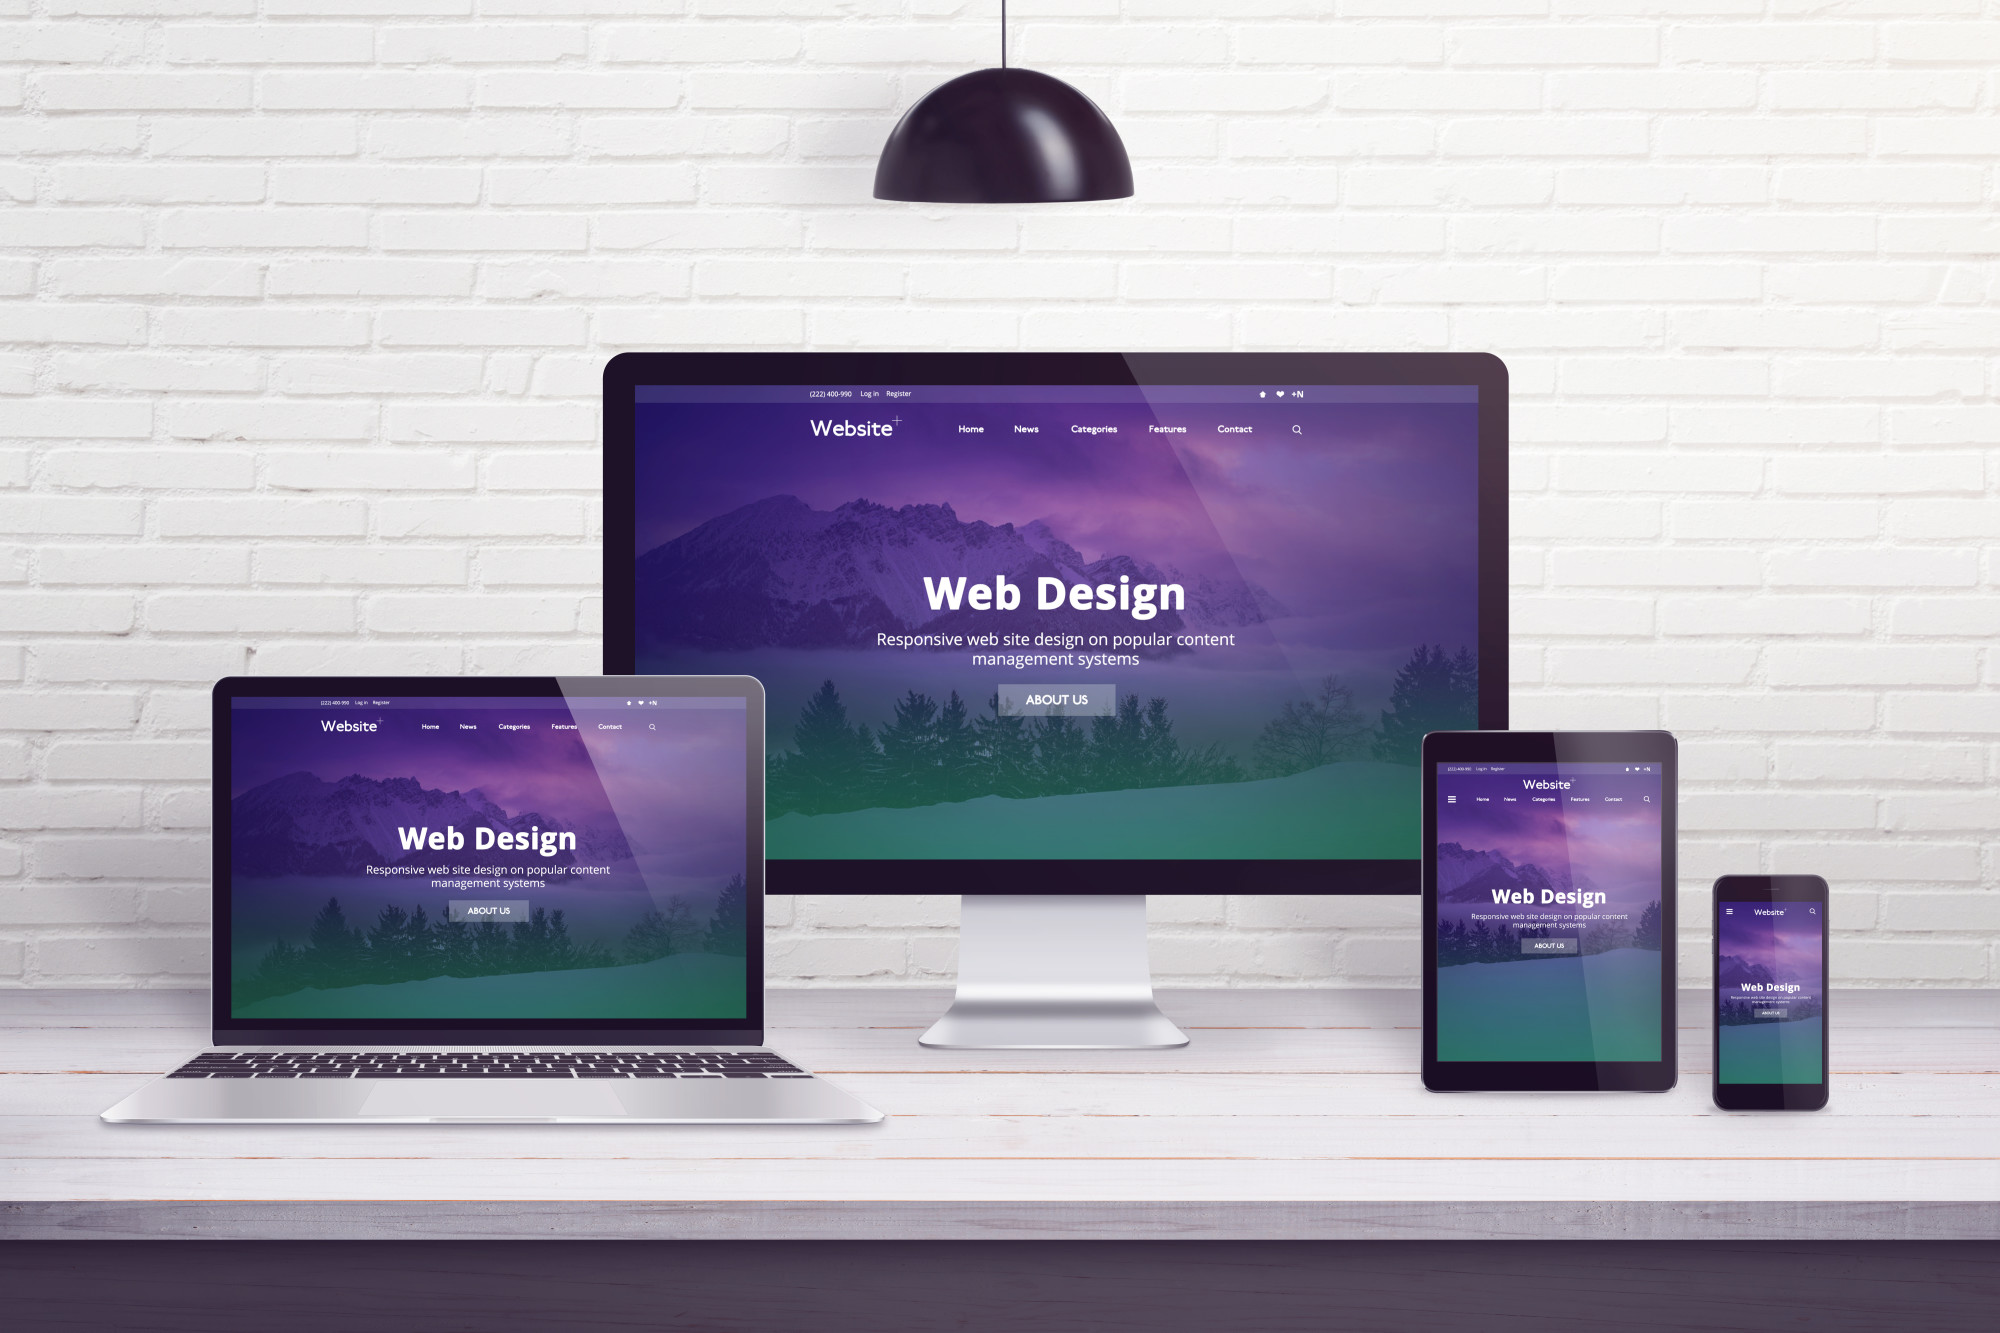 web design screens on multiple devices